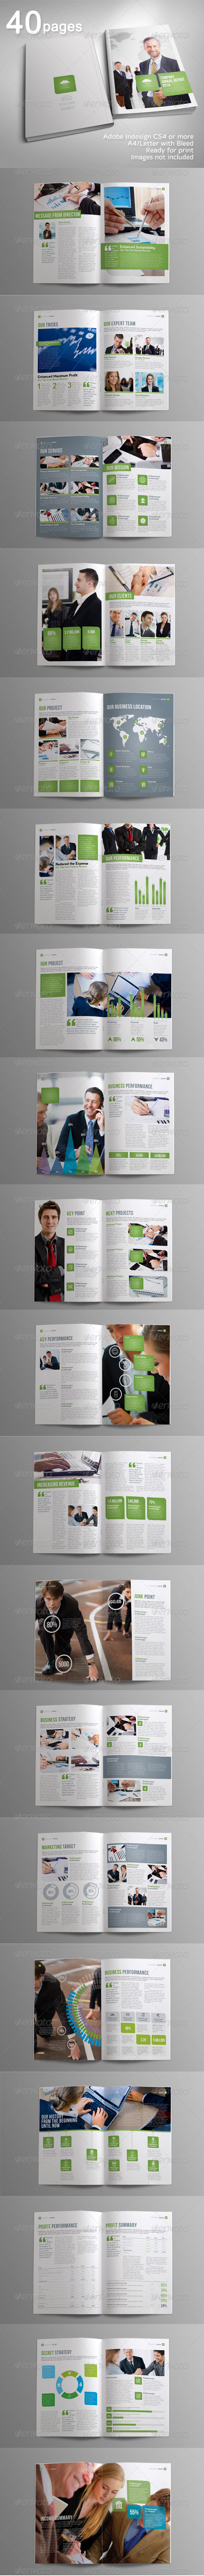 GraphicRiver 40 Pages Indah Corporate Brochure Volume 2 4275794